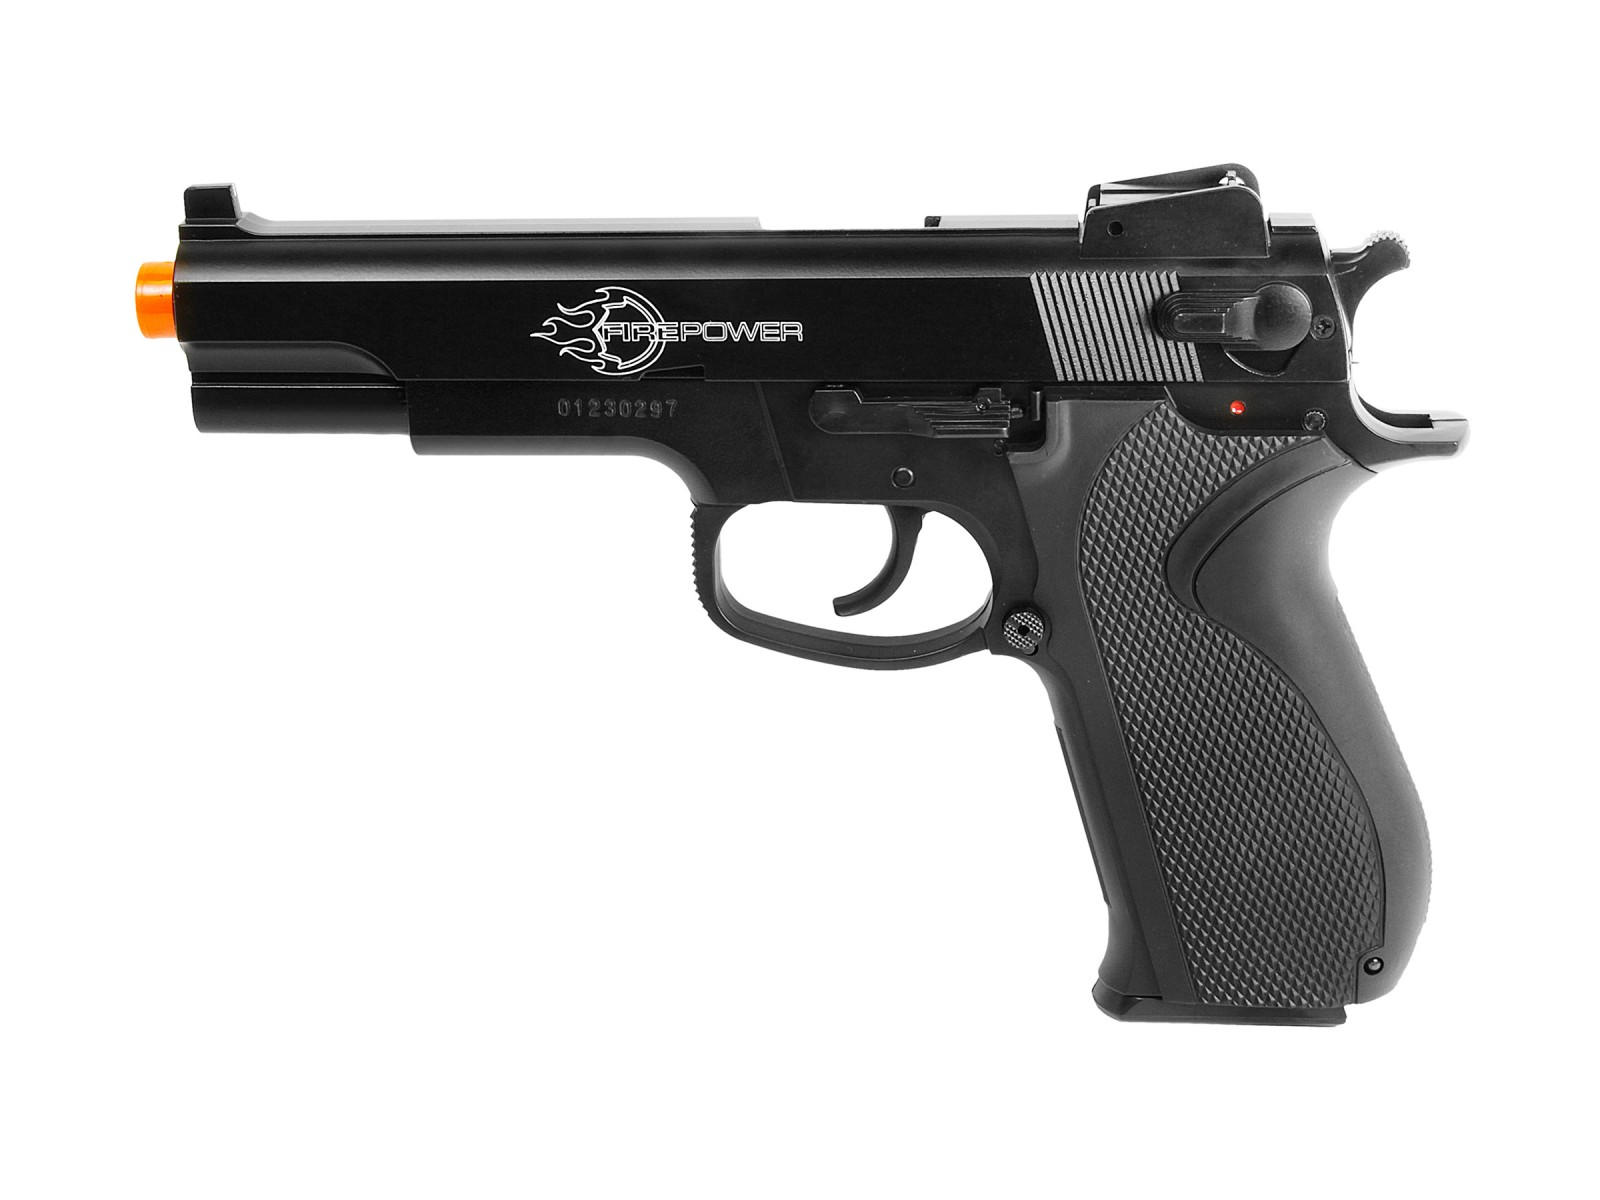 Firepower .45 Spring Airsoft Pistol, Metal Slide 6mm Image